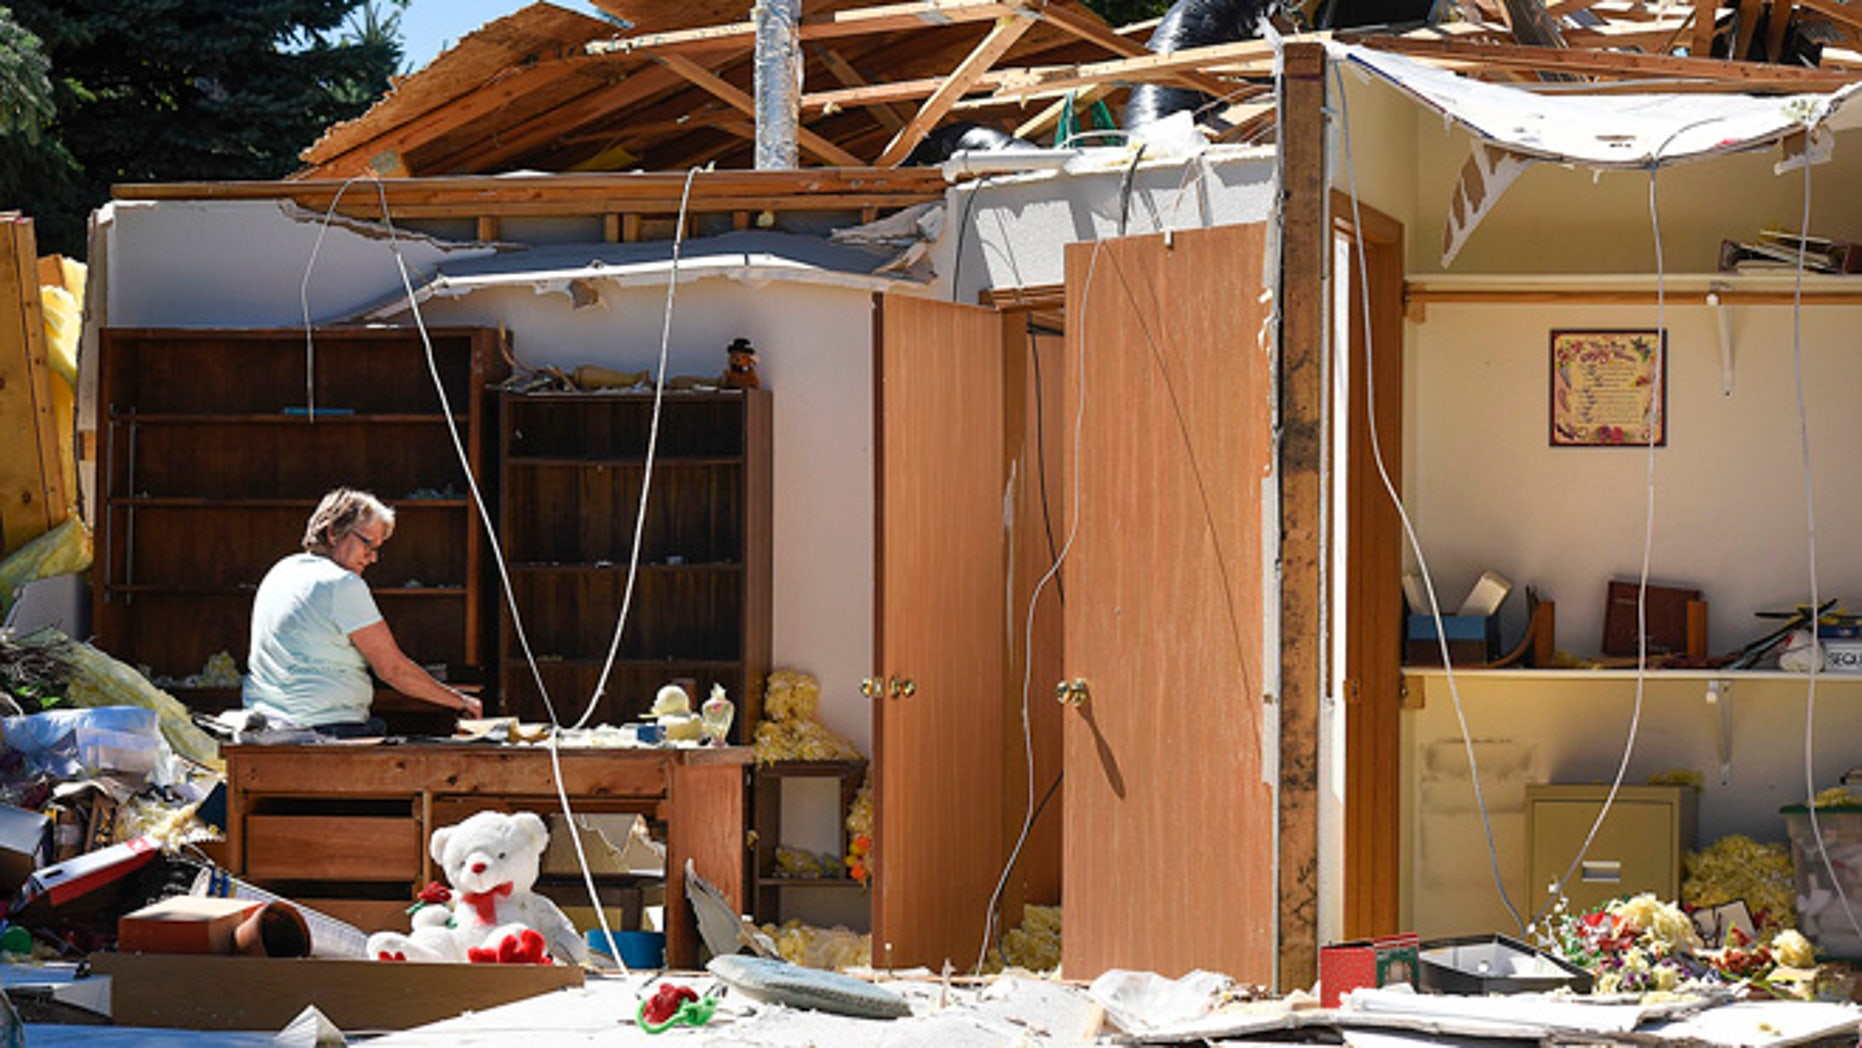 Marilyn Kuechle takes a break while packing the belongings in what's left of her sisters home Tuesday, July 12, 2016, after a tornado destroyed the home Monday night in Watkins. (Jason Wachter/St. Cloud Times via AP)